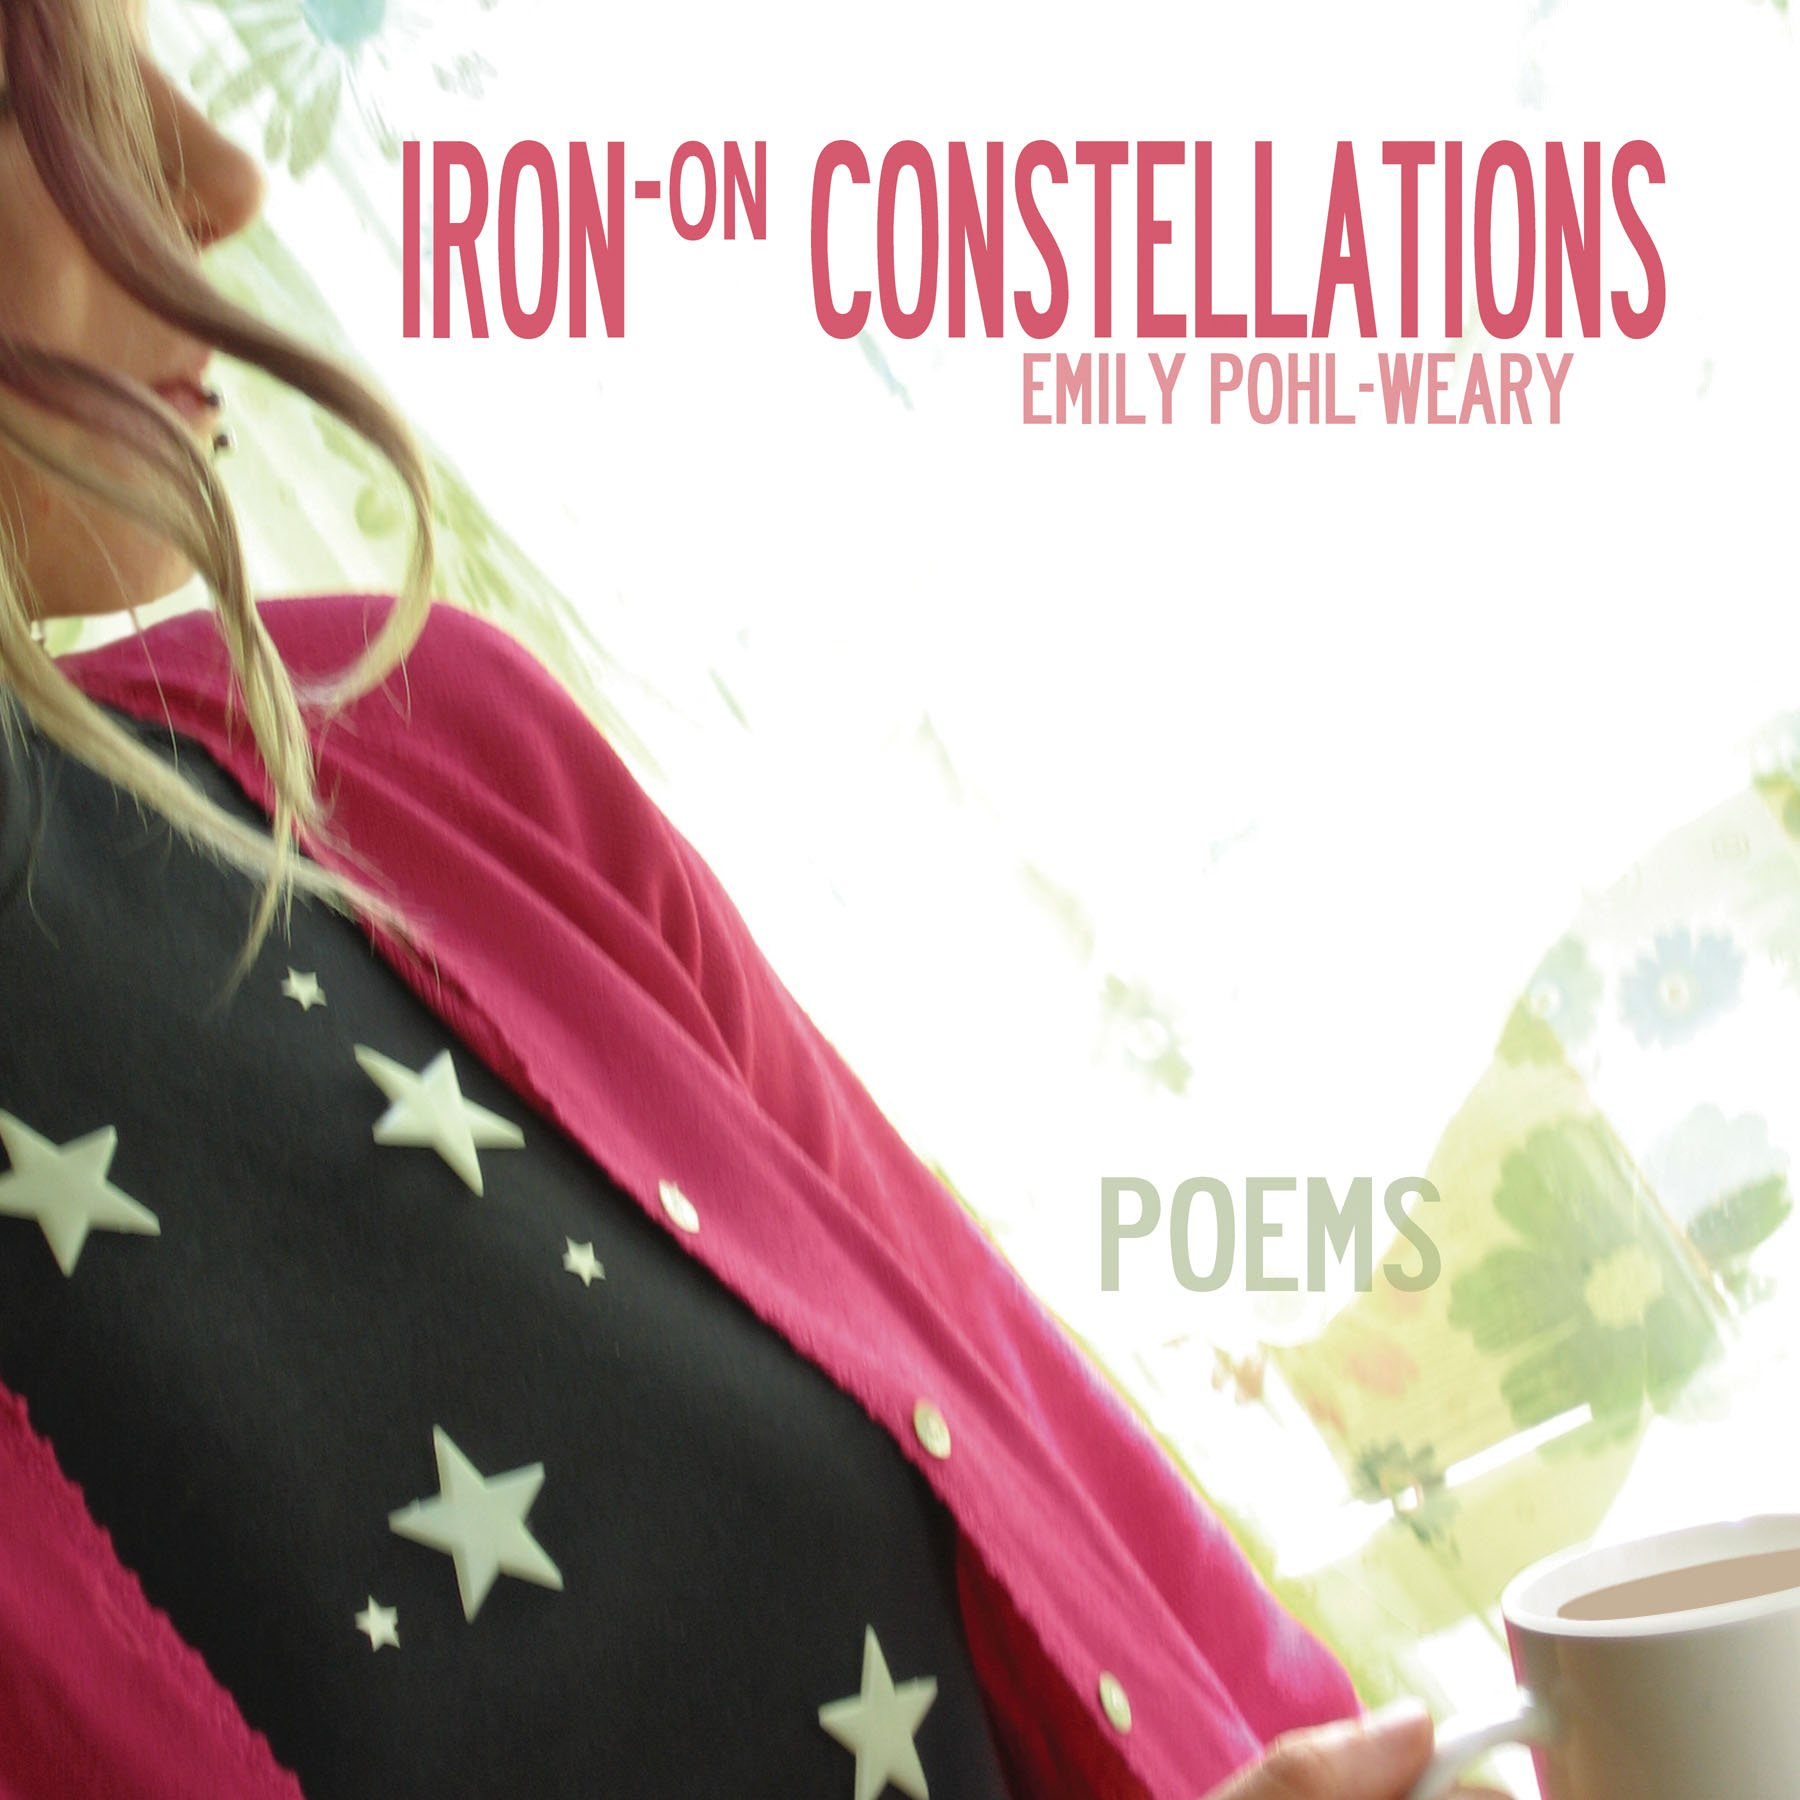 IRON-ON CONSTELLATIONS COVER HIGH RES